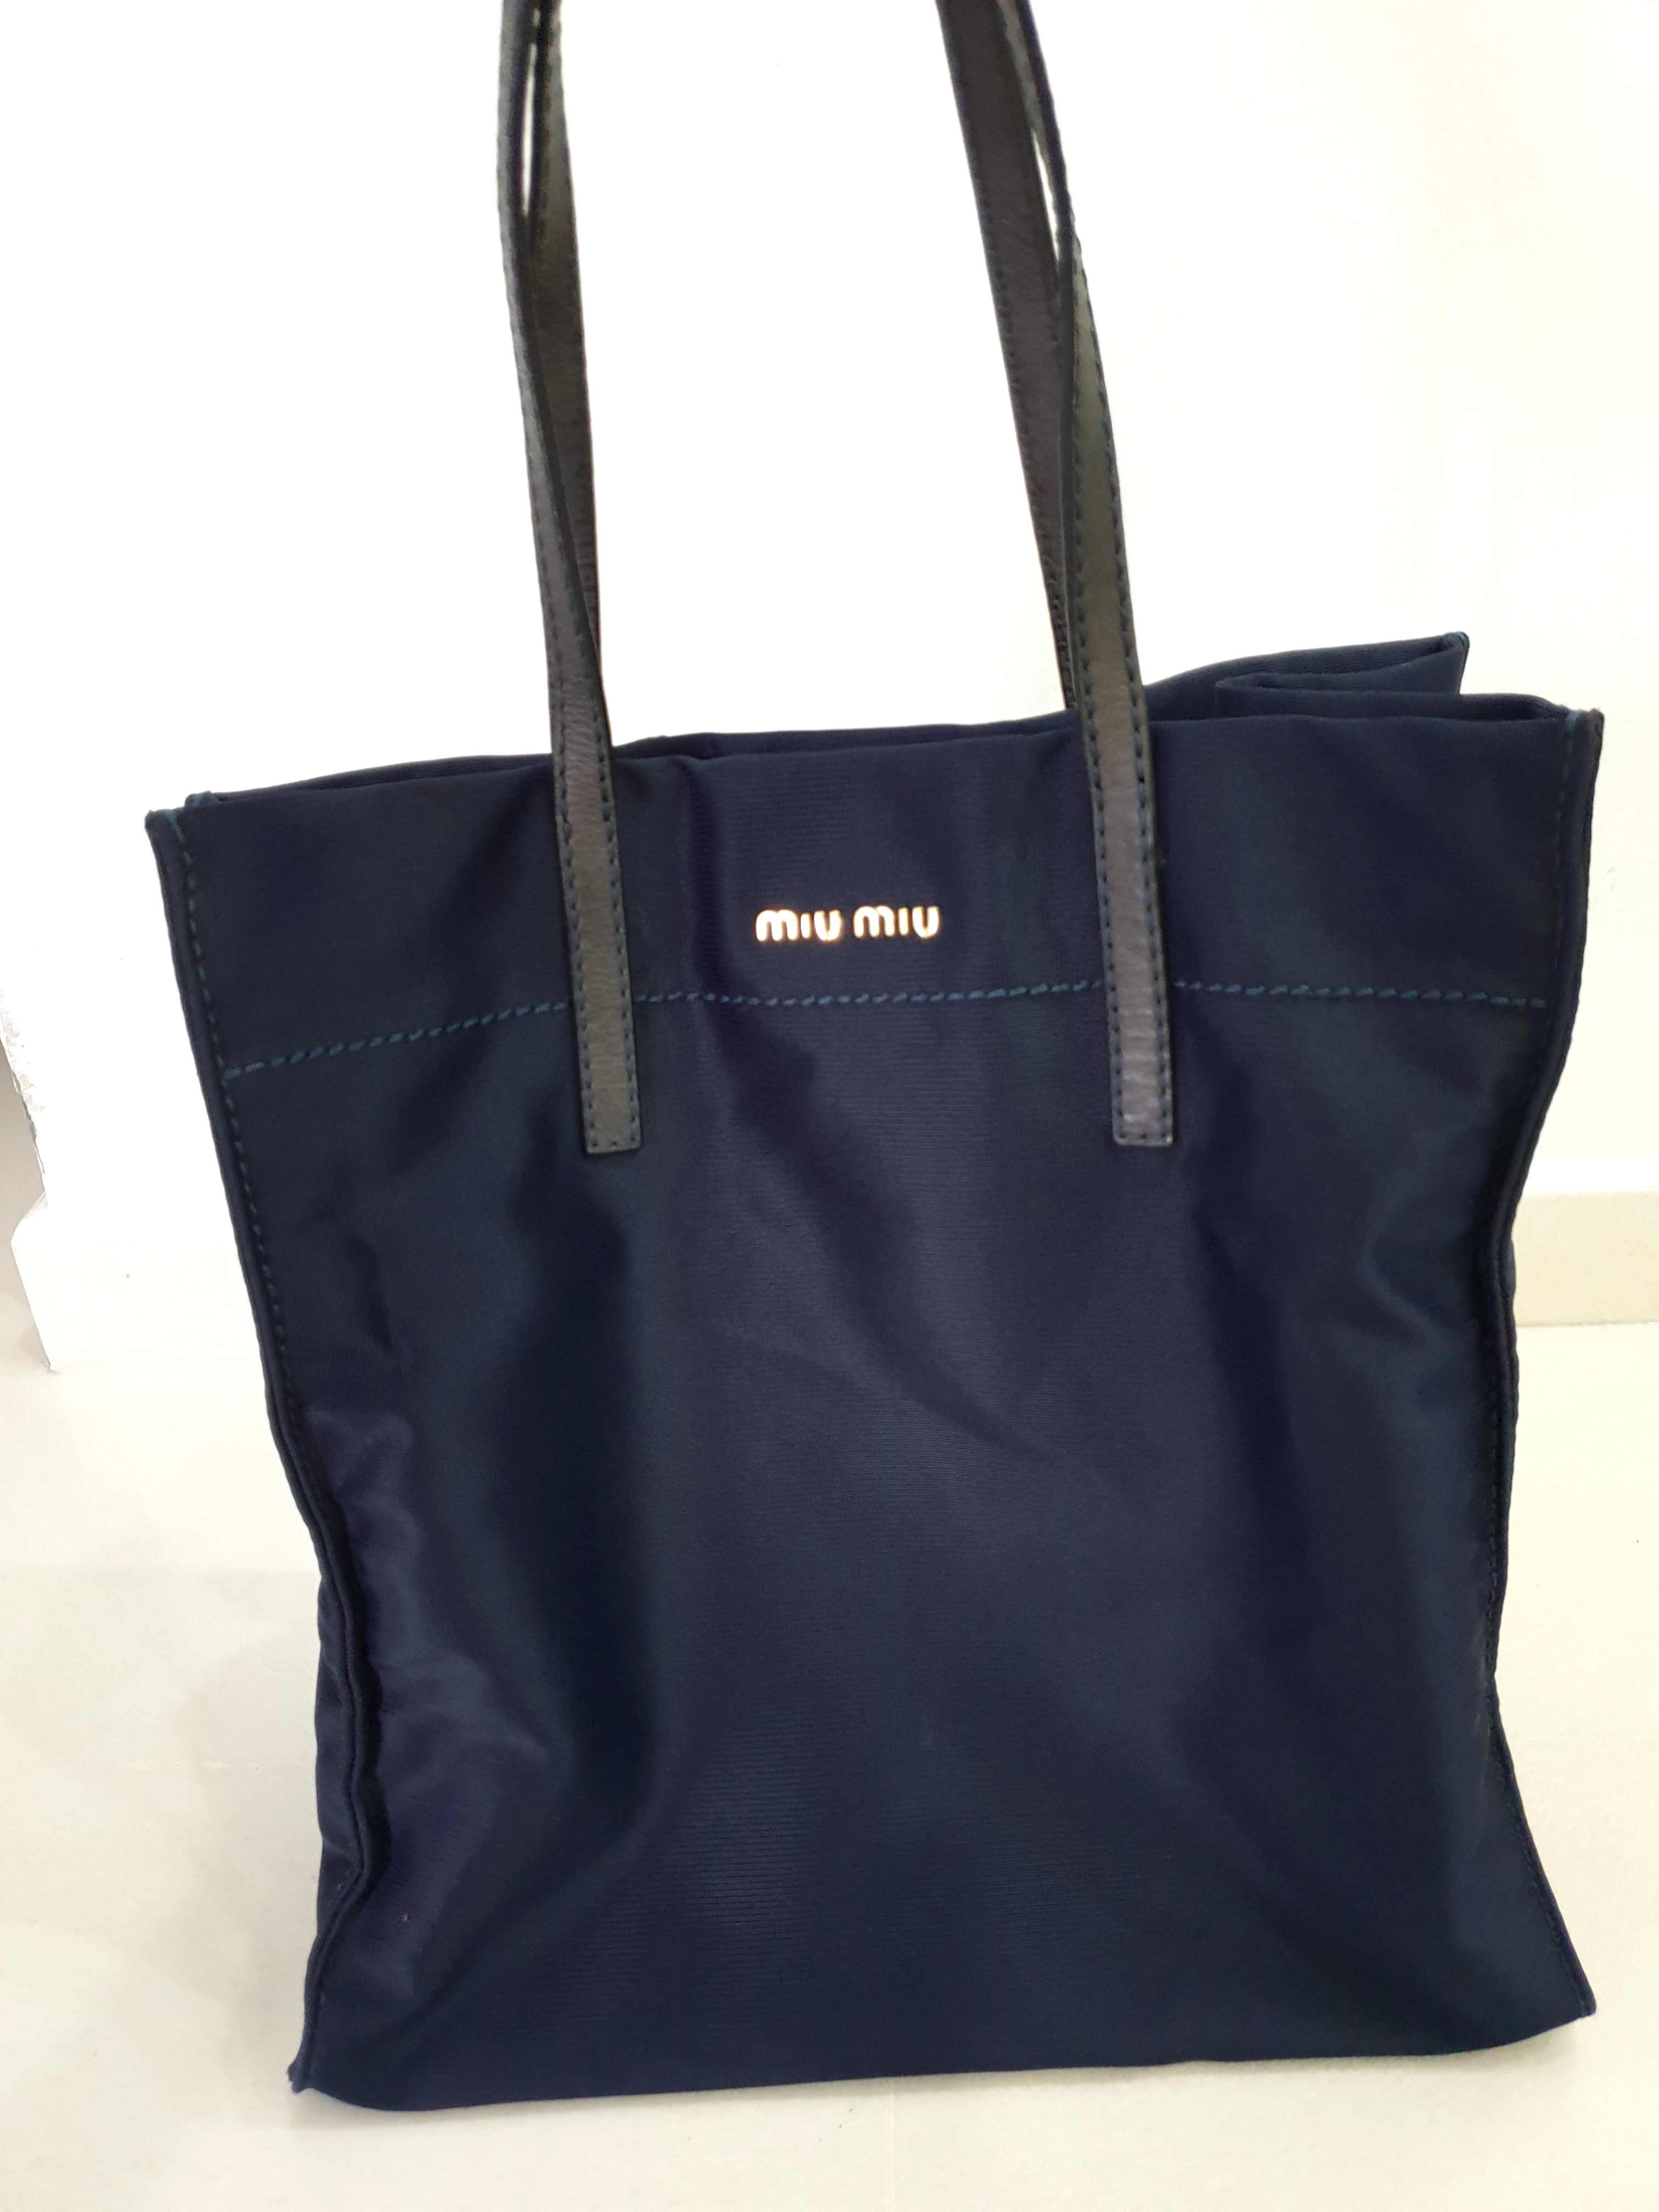 abc6e4efe5d6 Miu Miu Travel Tote Bag - Navy